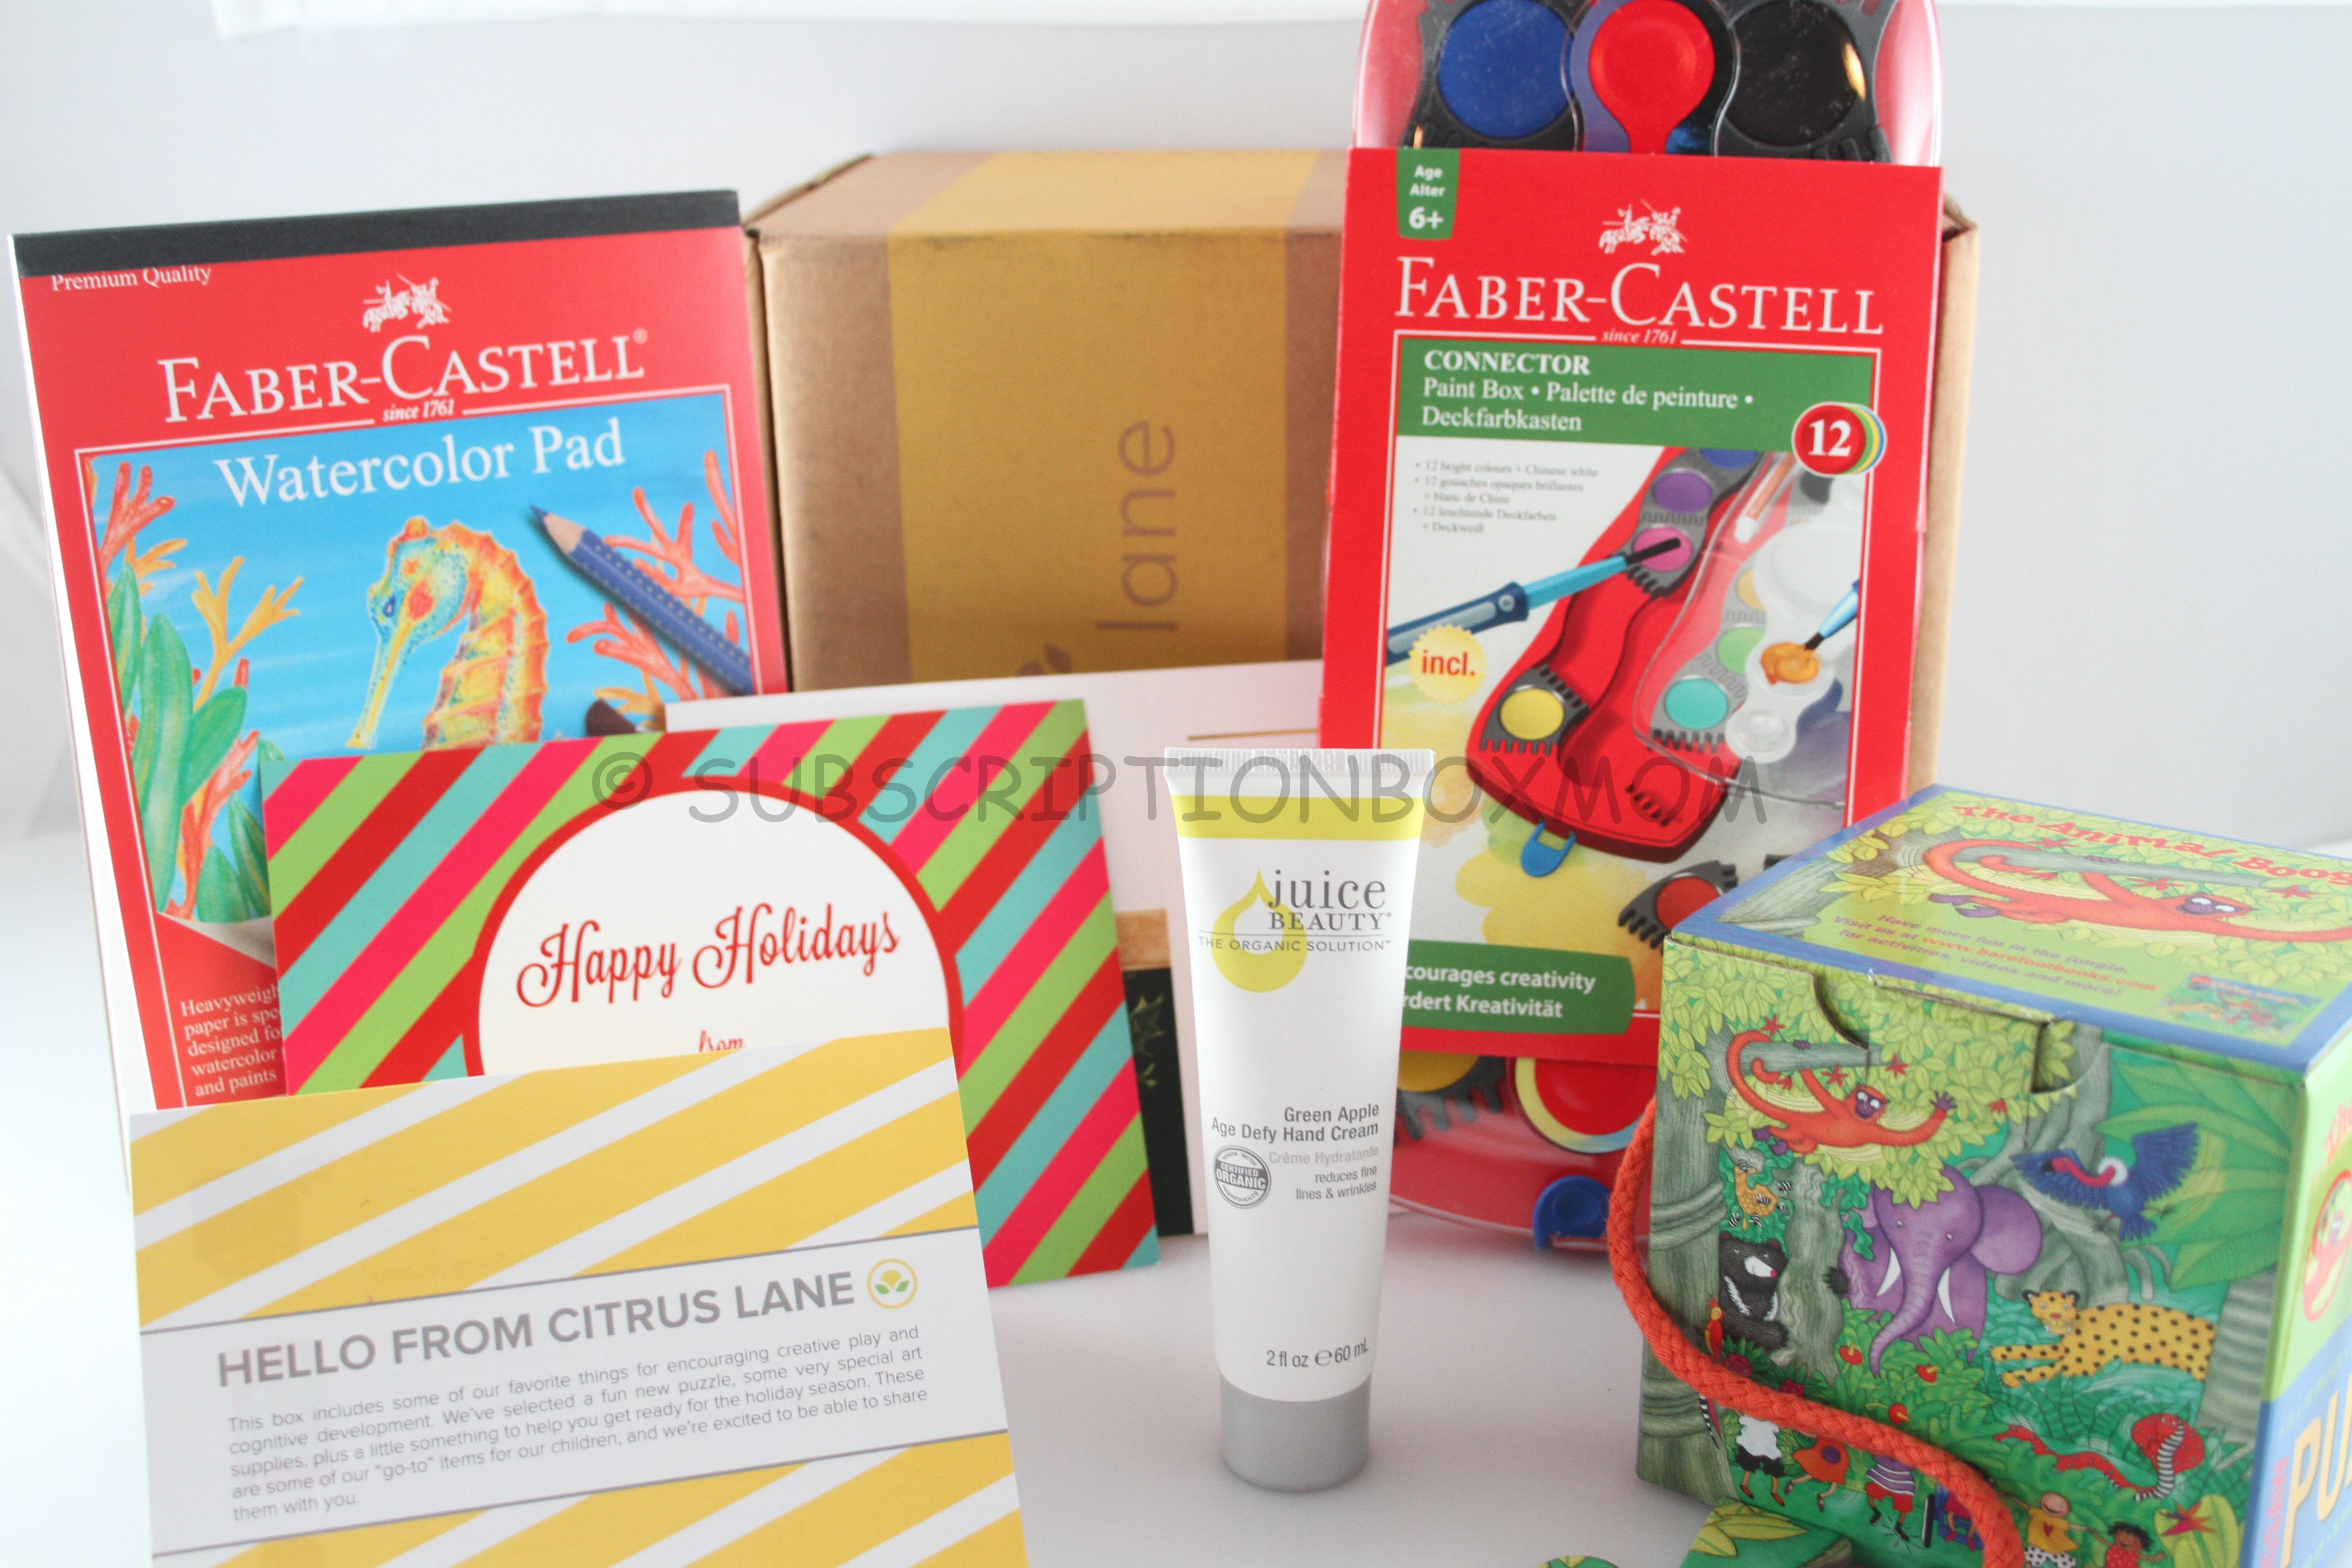 November 2014 Citrus Lane Review - 5 Year Old Boy + Coupon ...